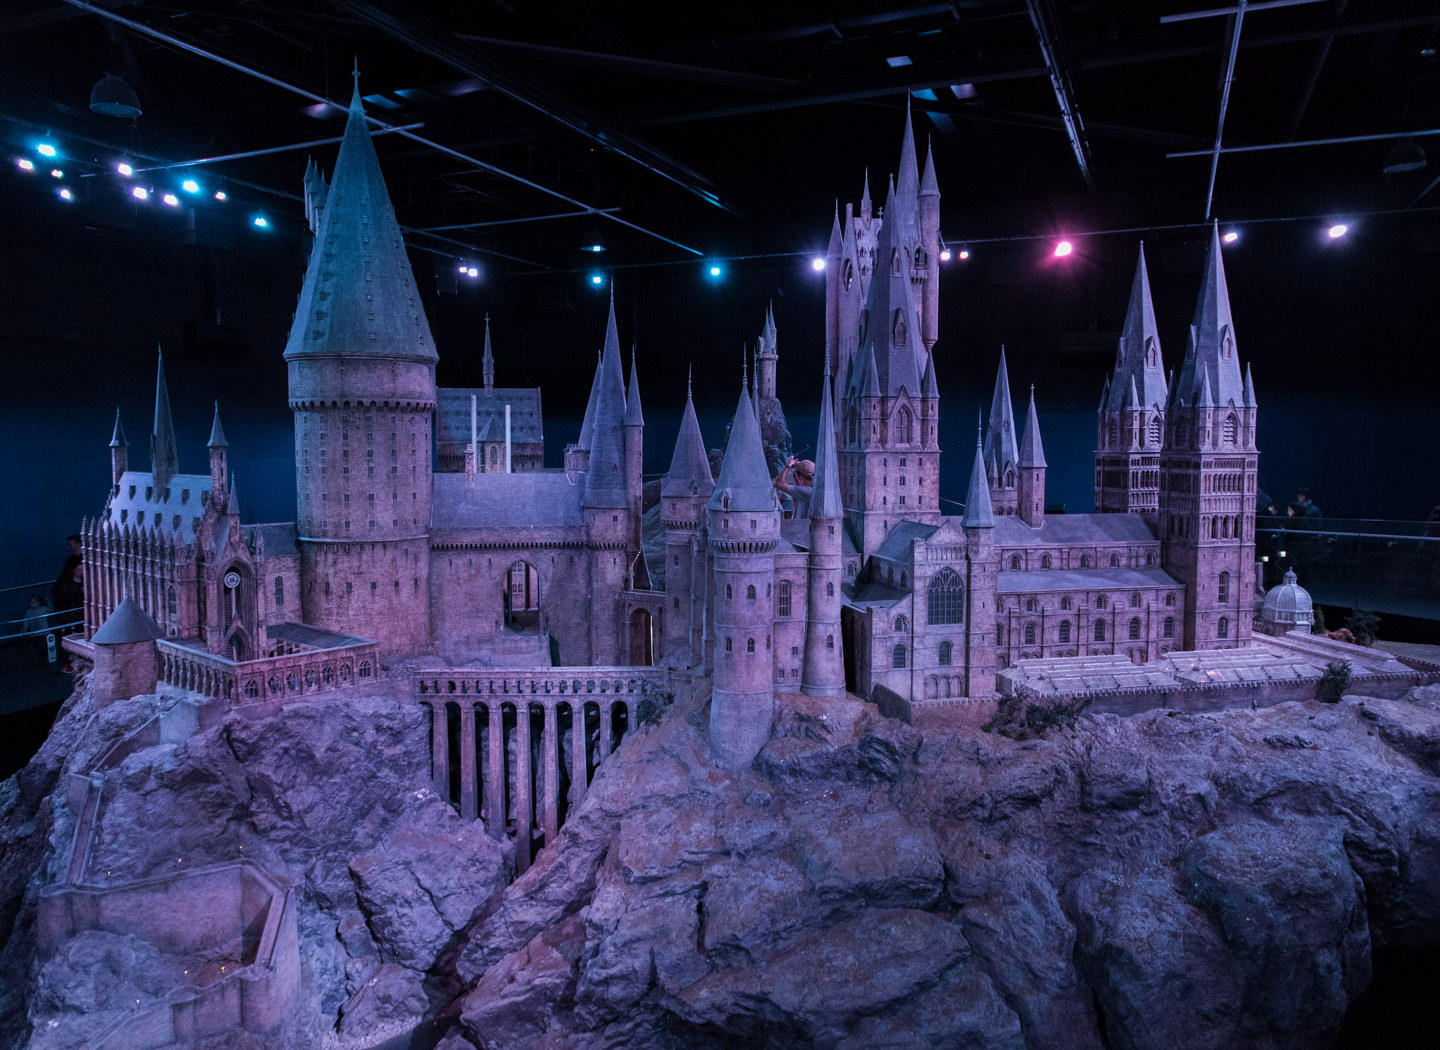 Blog-Mode-And-The-City-Lifestyle-Visite-Studios-Harry-Potter-Londres-30